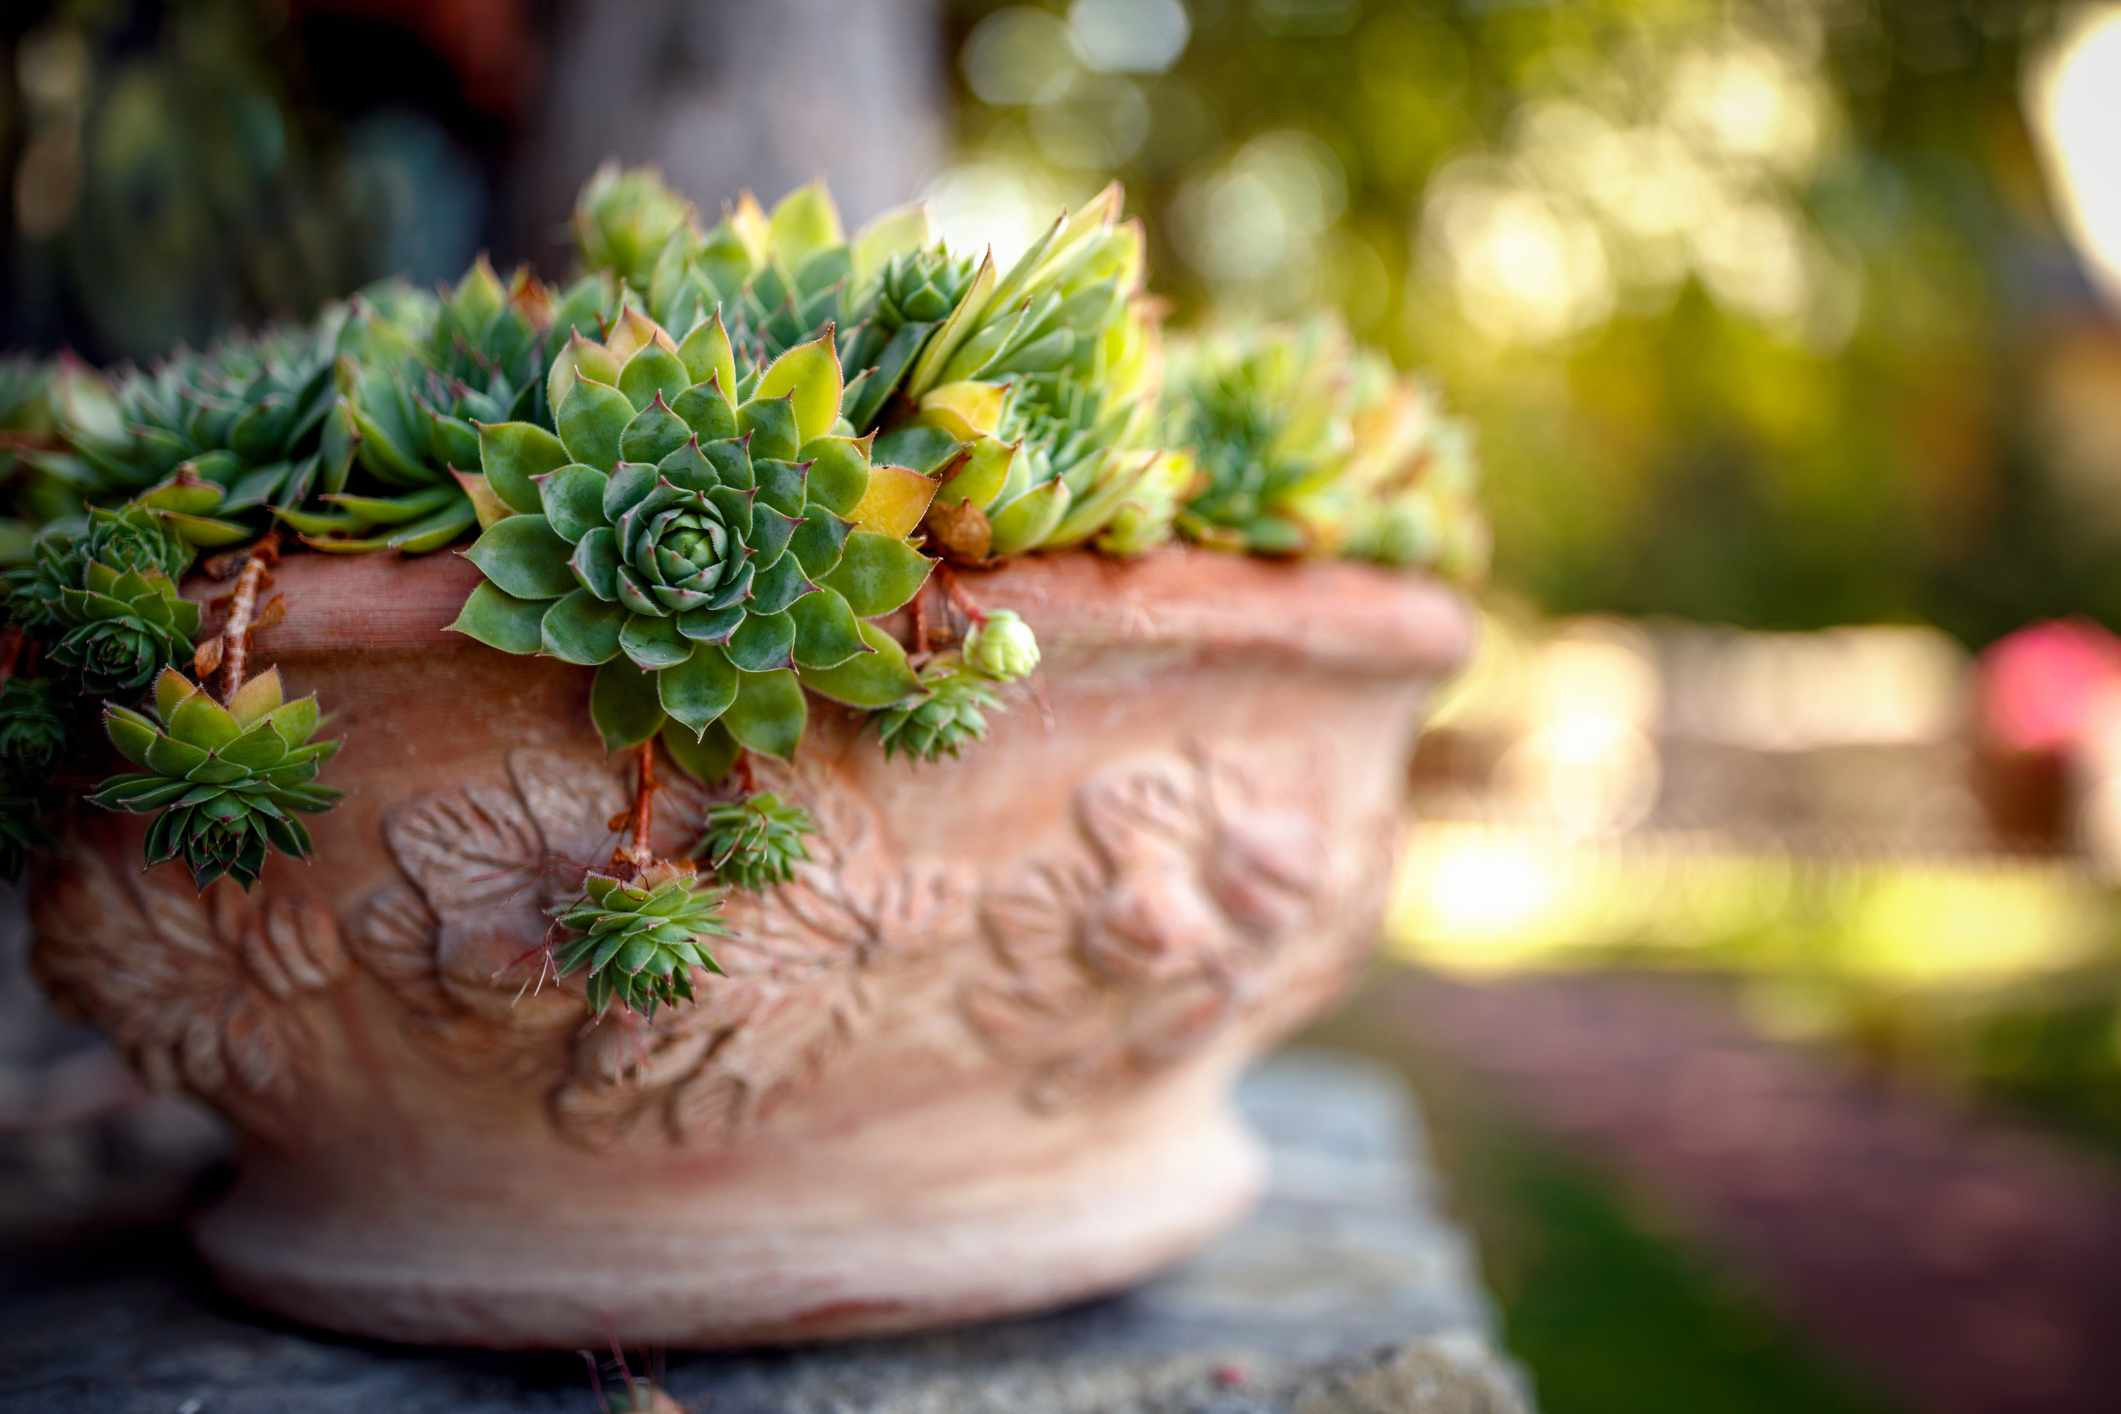 Green hen and chicks in planter